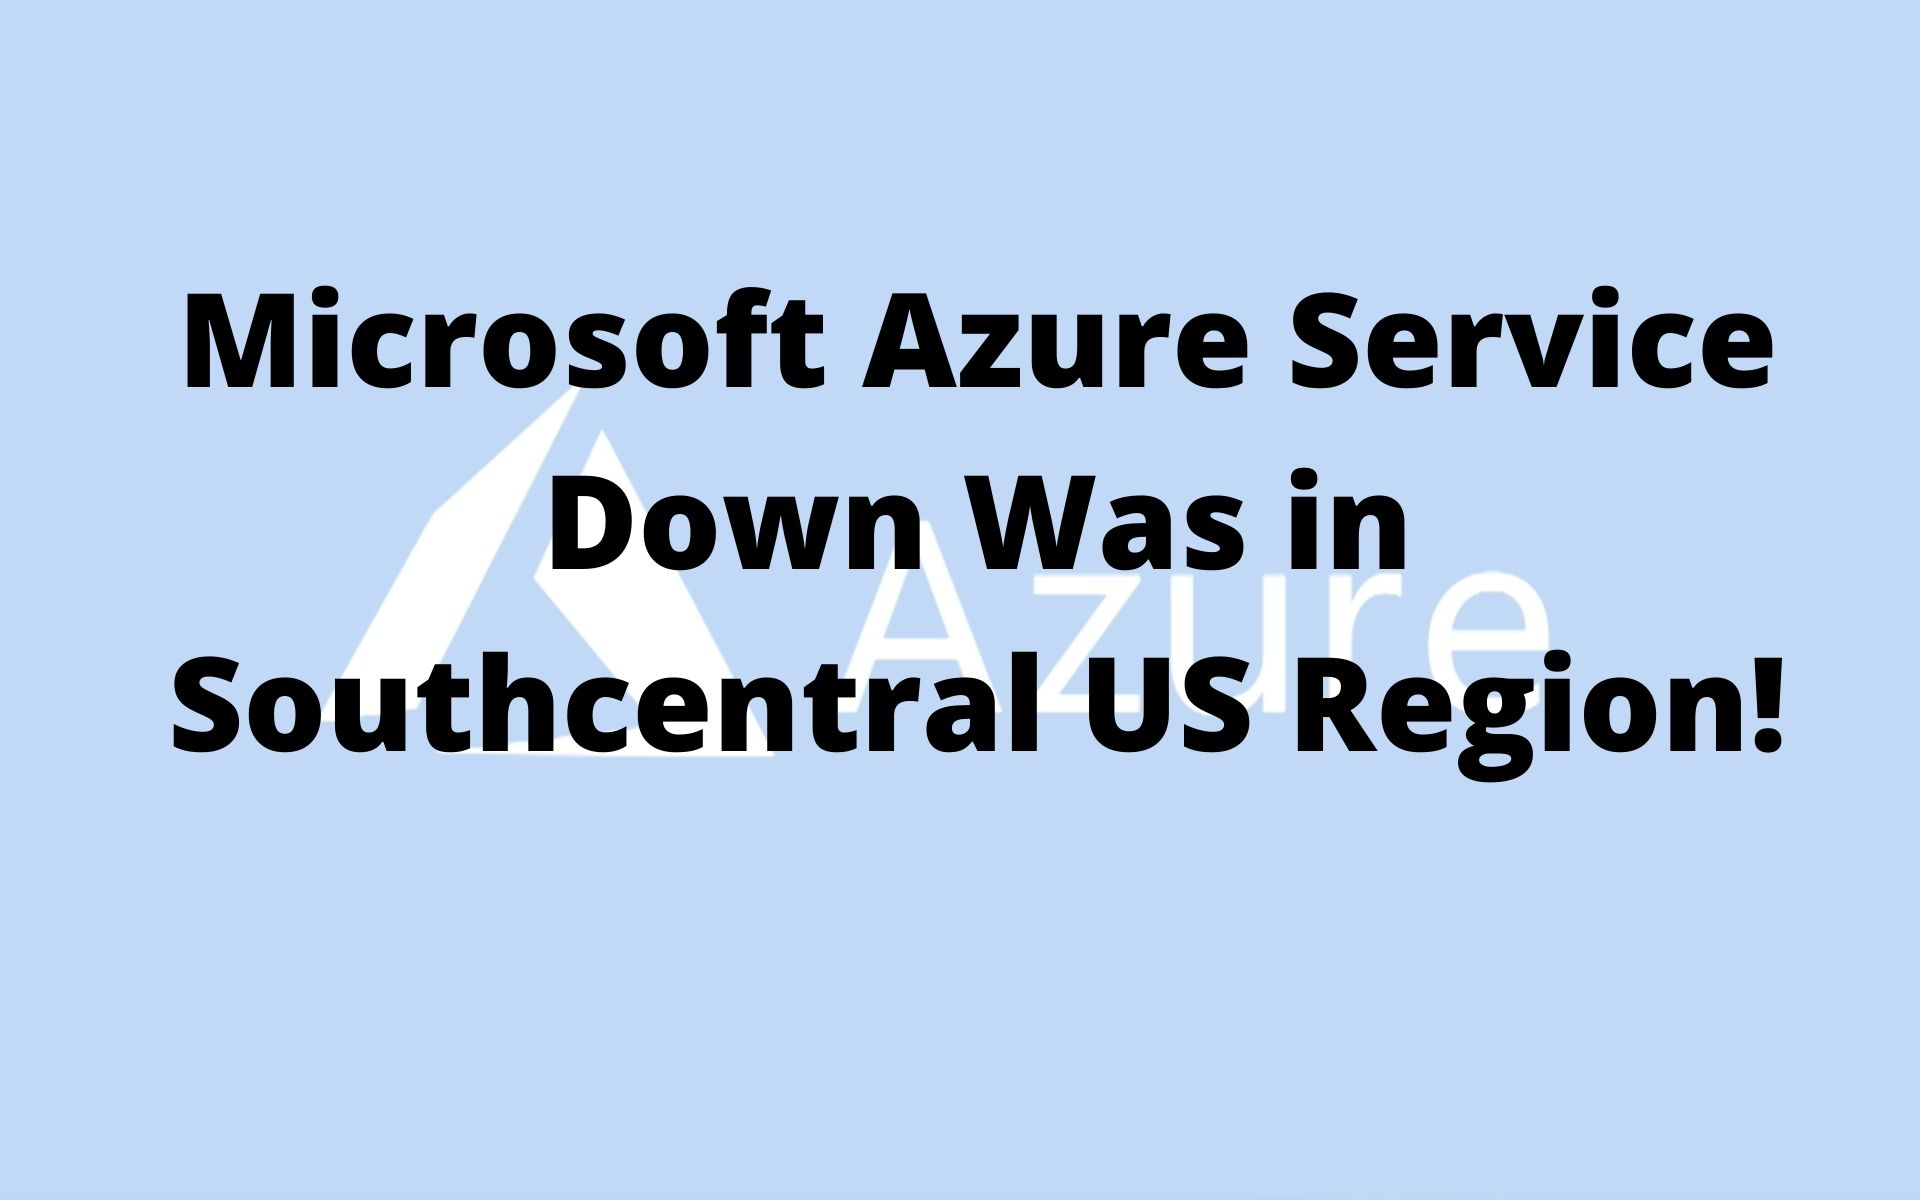 Microsoft Azure Service Down Was in Southcentral US Region!